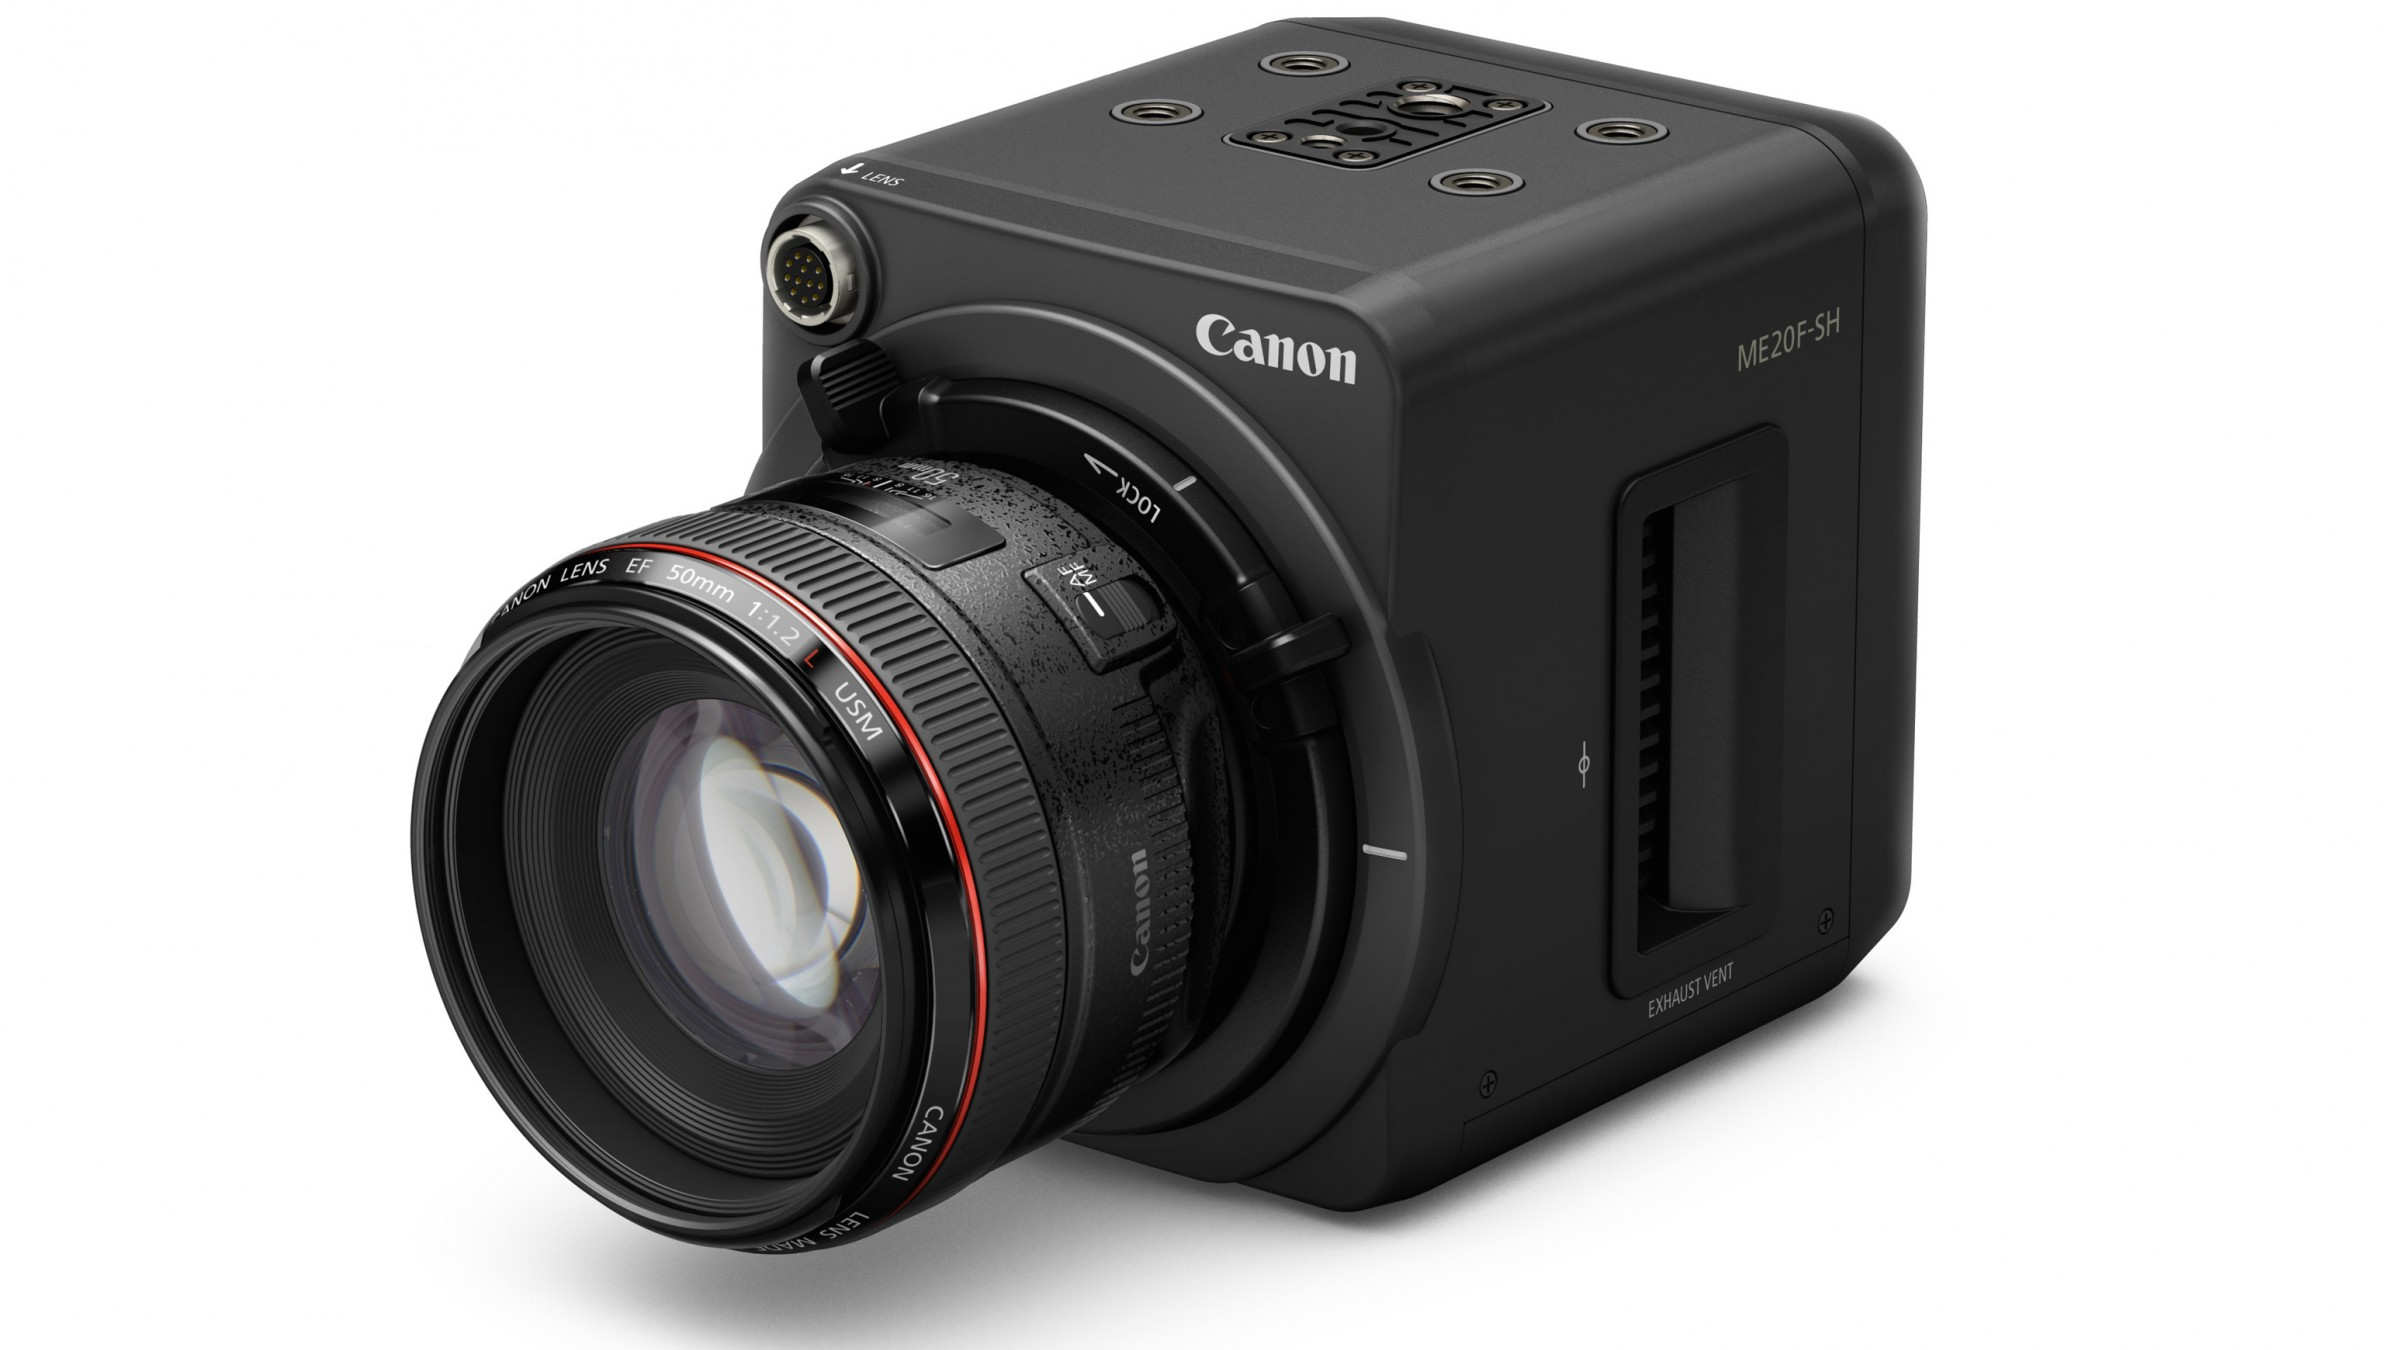 New Canon Full-Frame 35mm Camera Sees in the Dark with 4 Million Max ISO